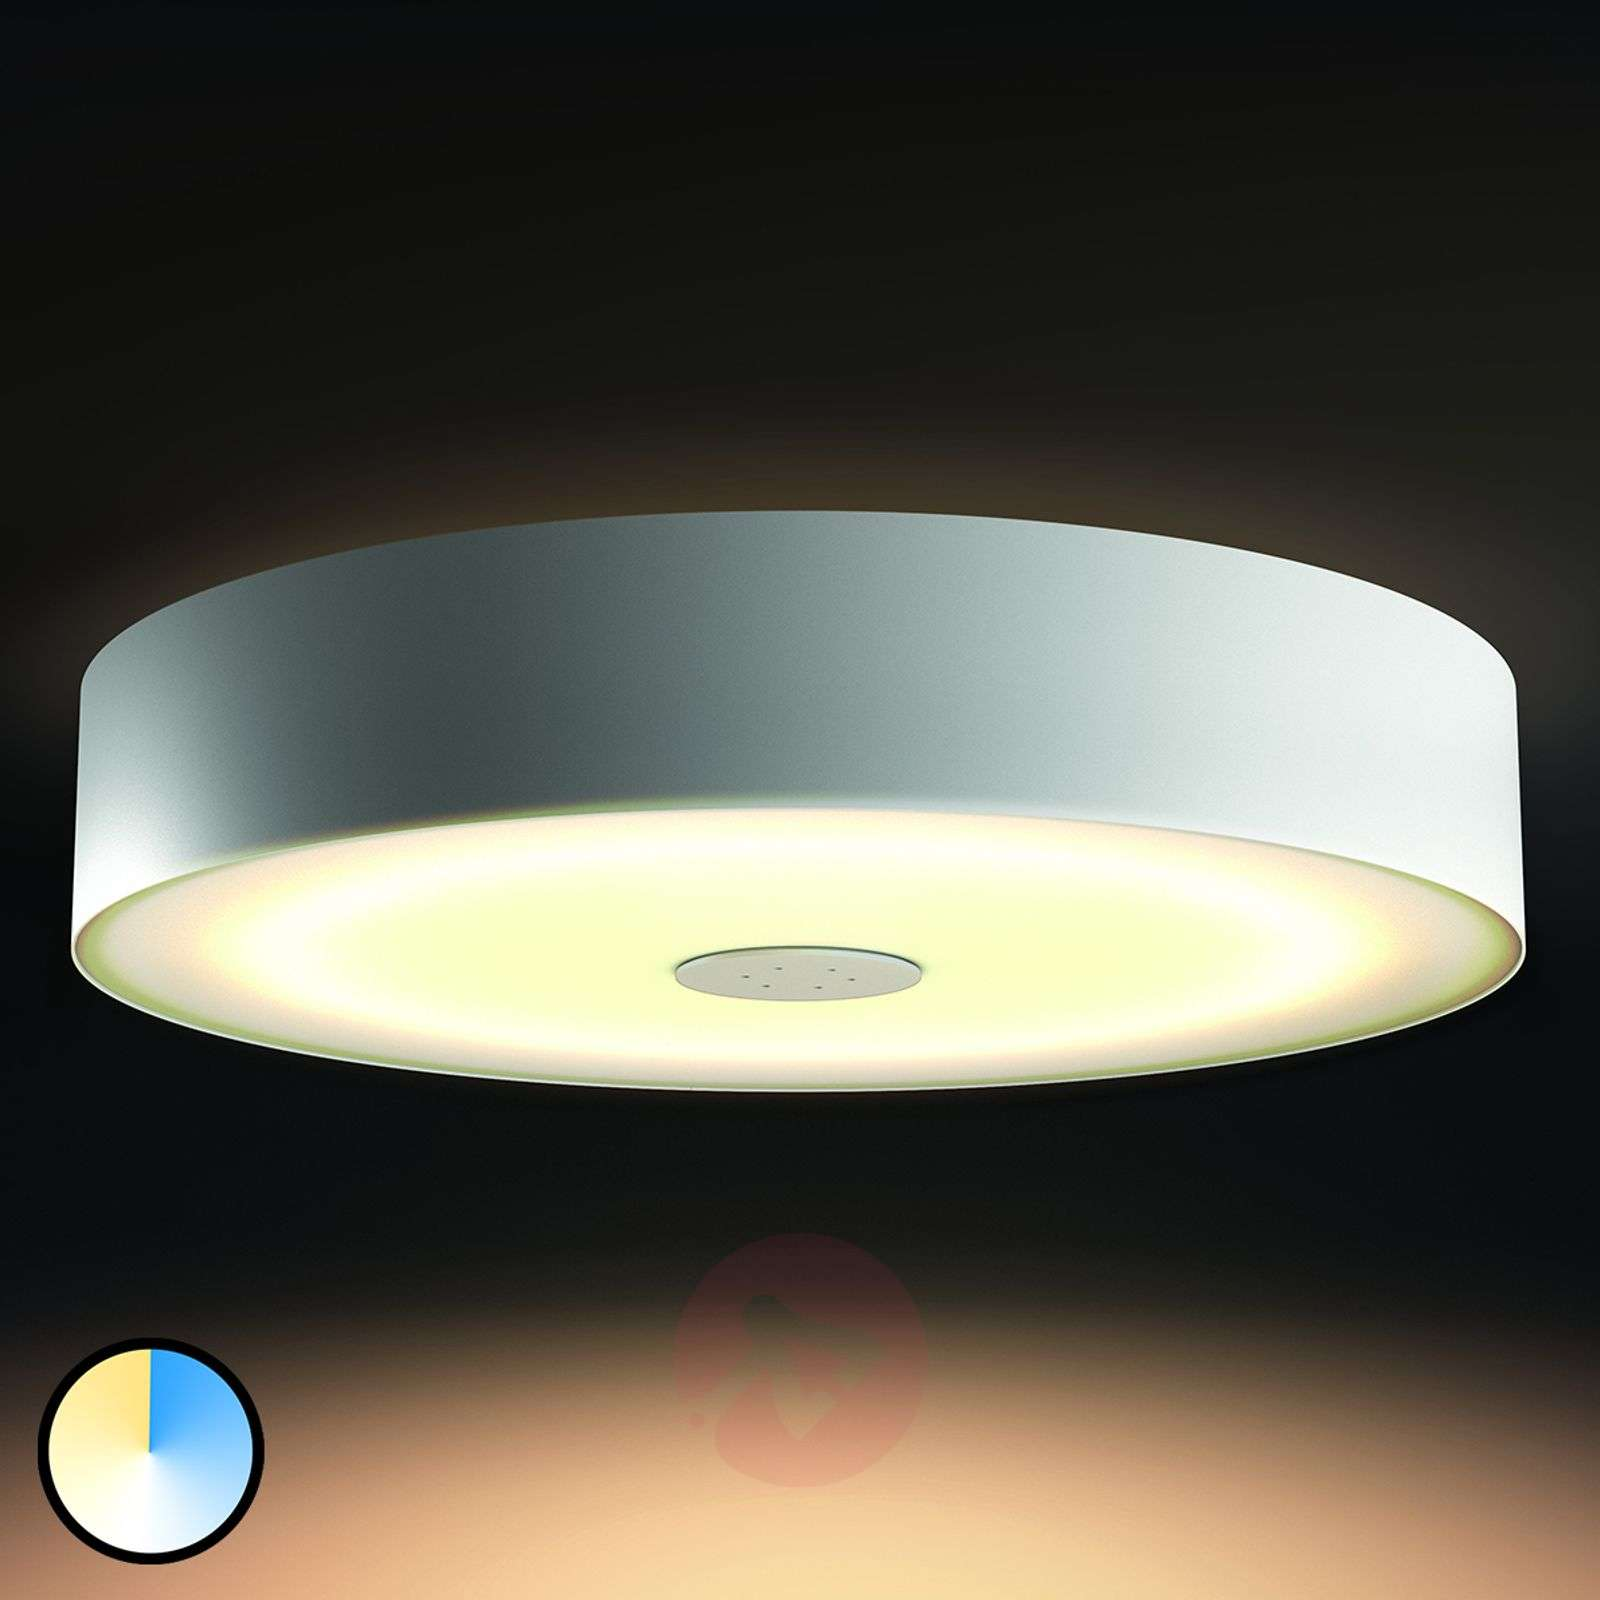 Philips Hue White Ambiance Fair, white-7531871-01